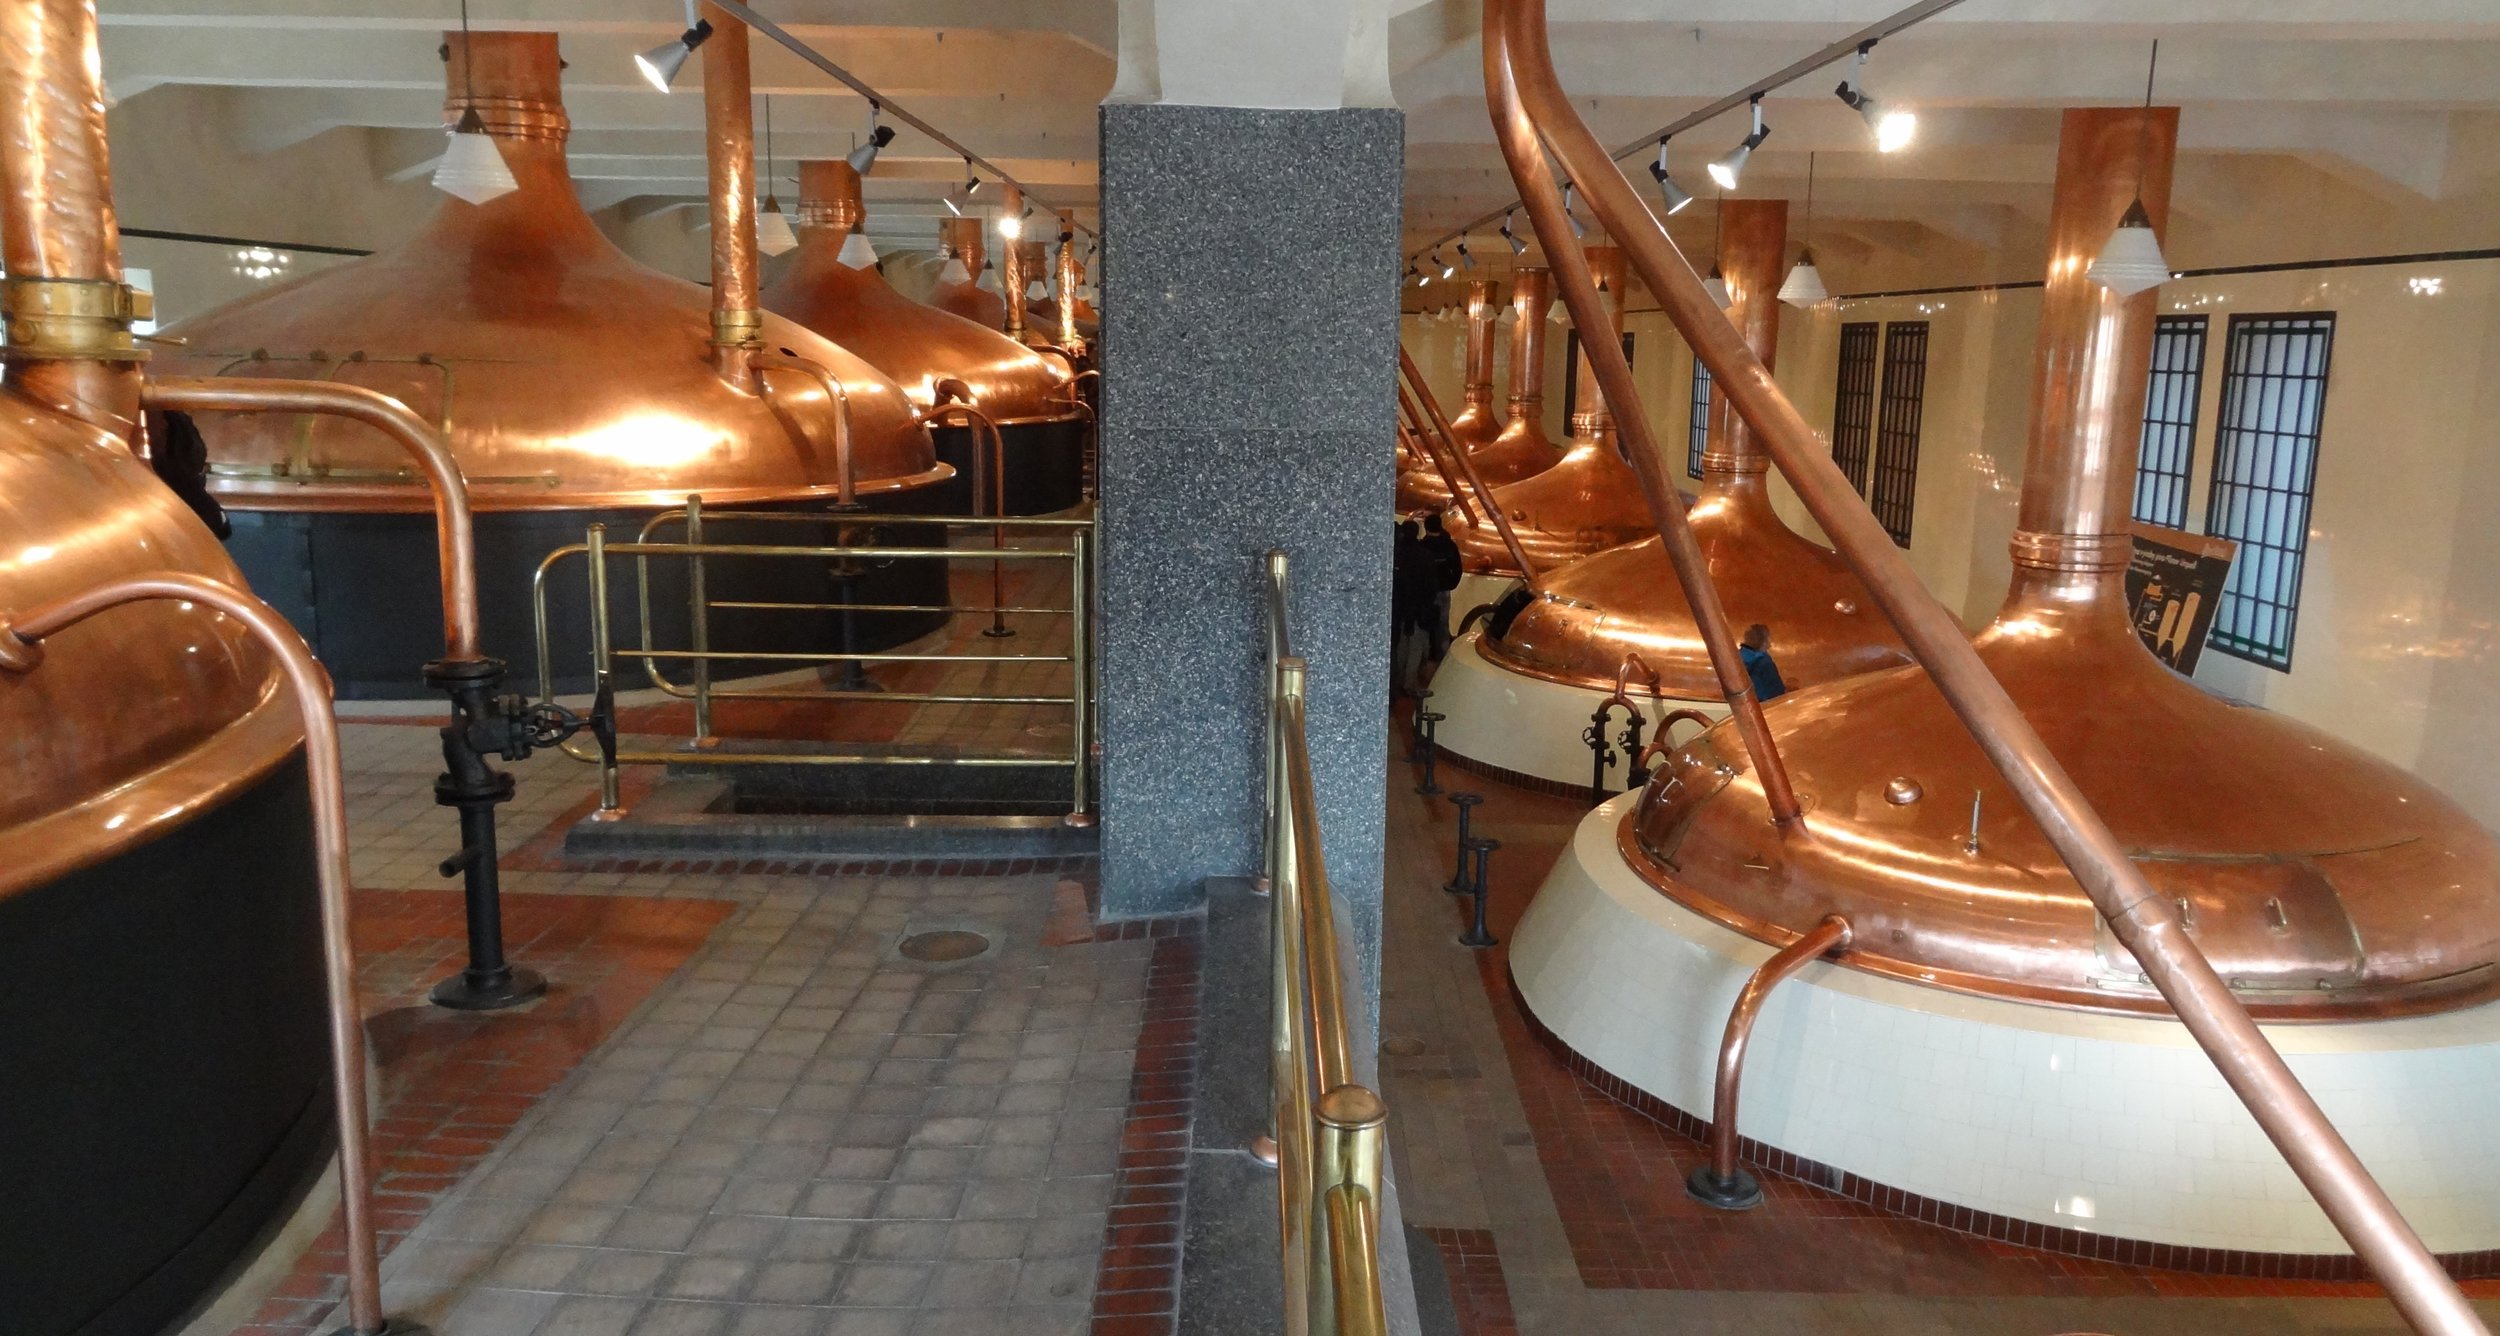 The old brewhouse.